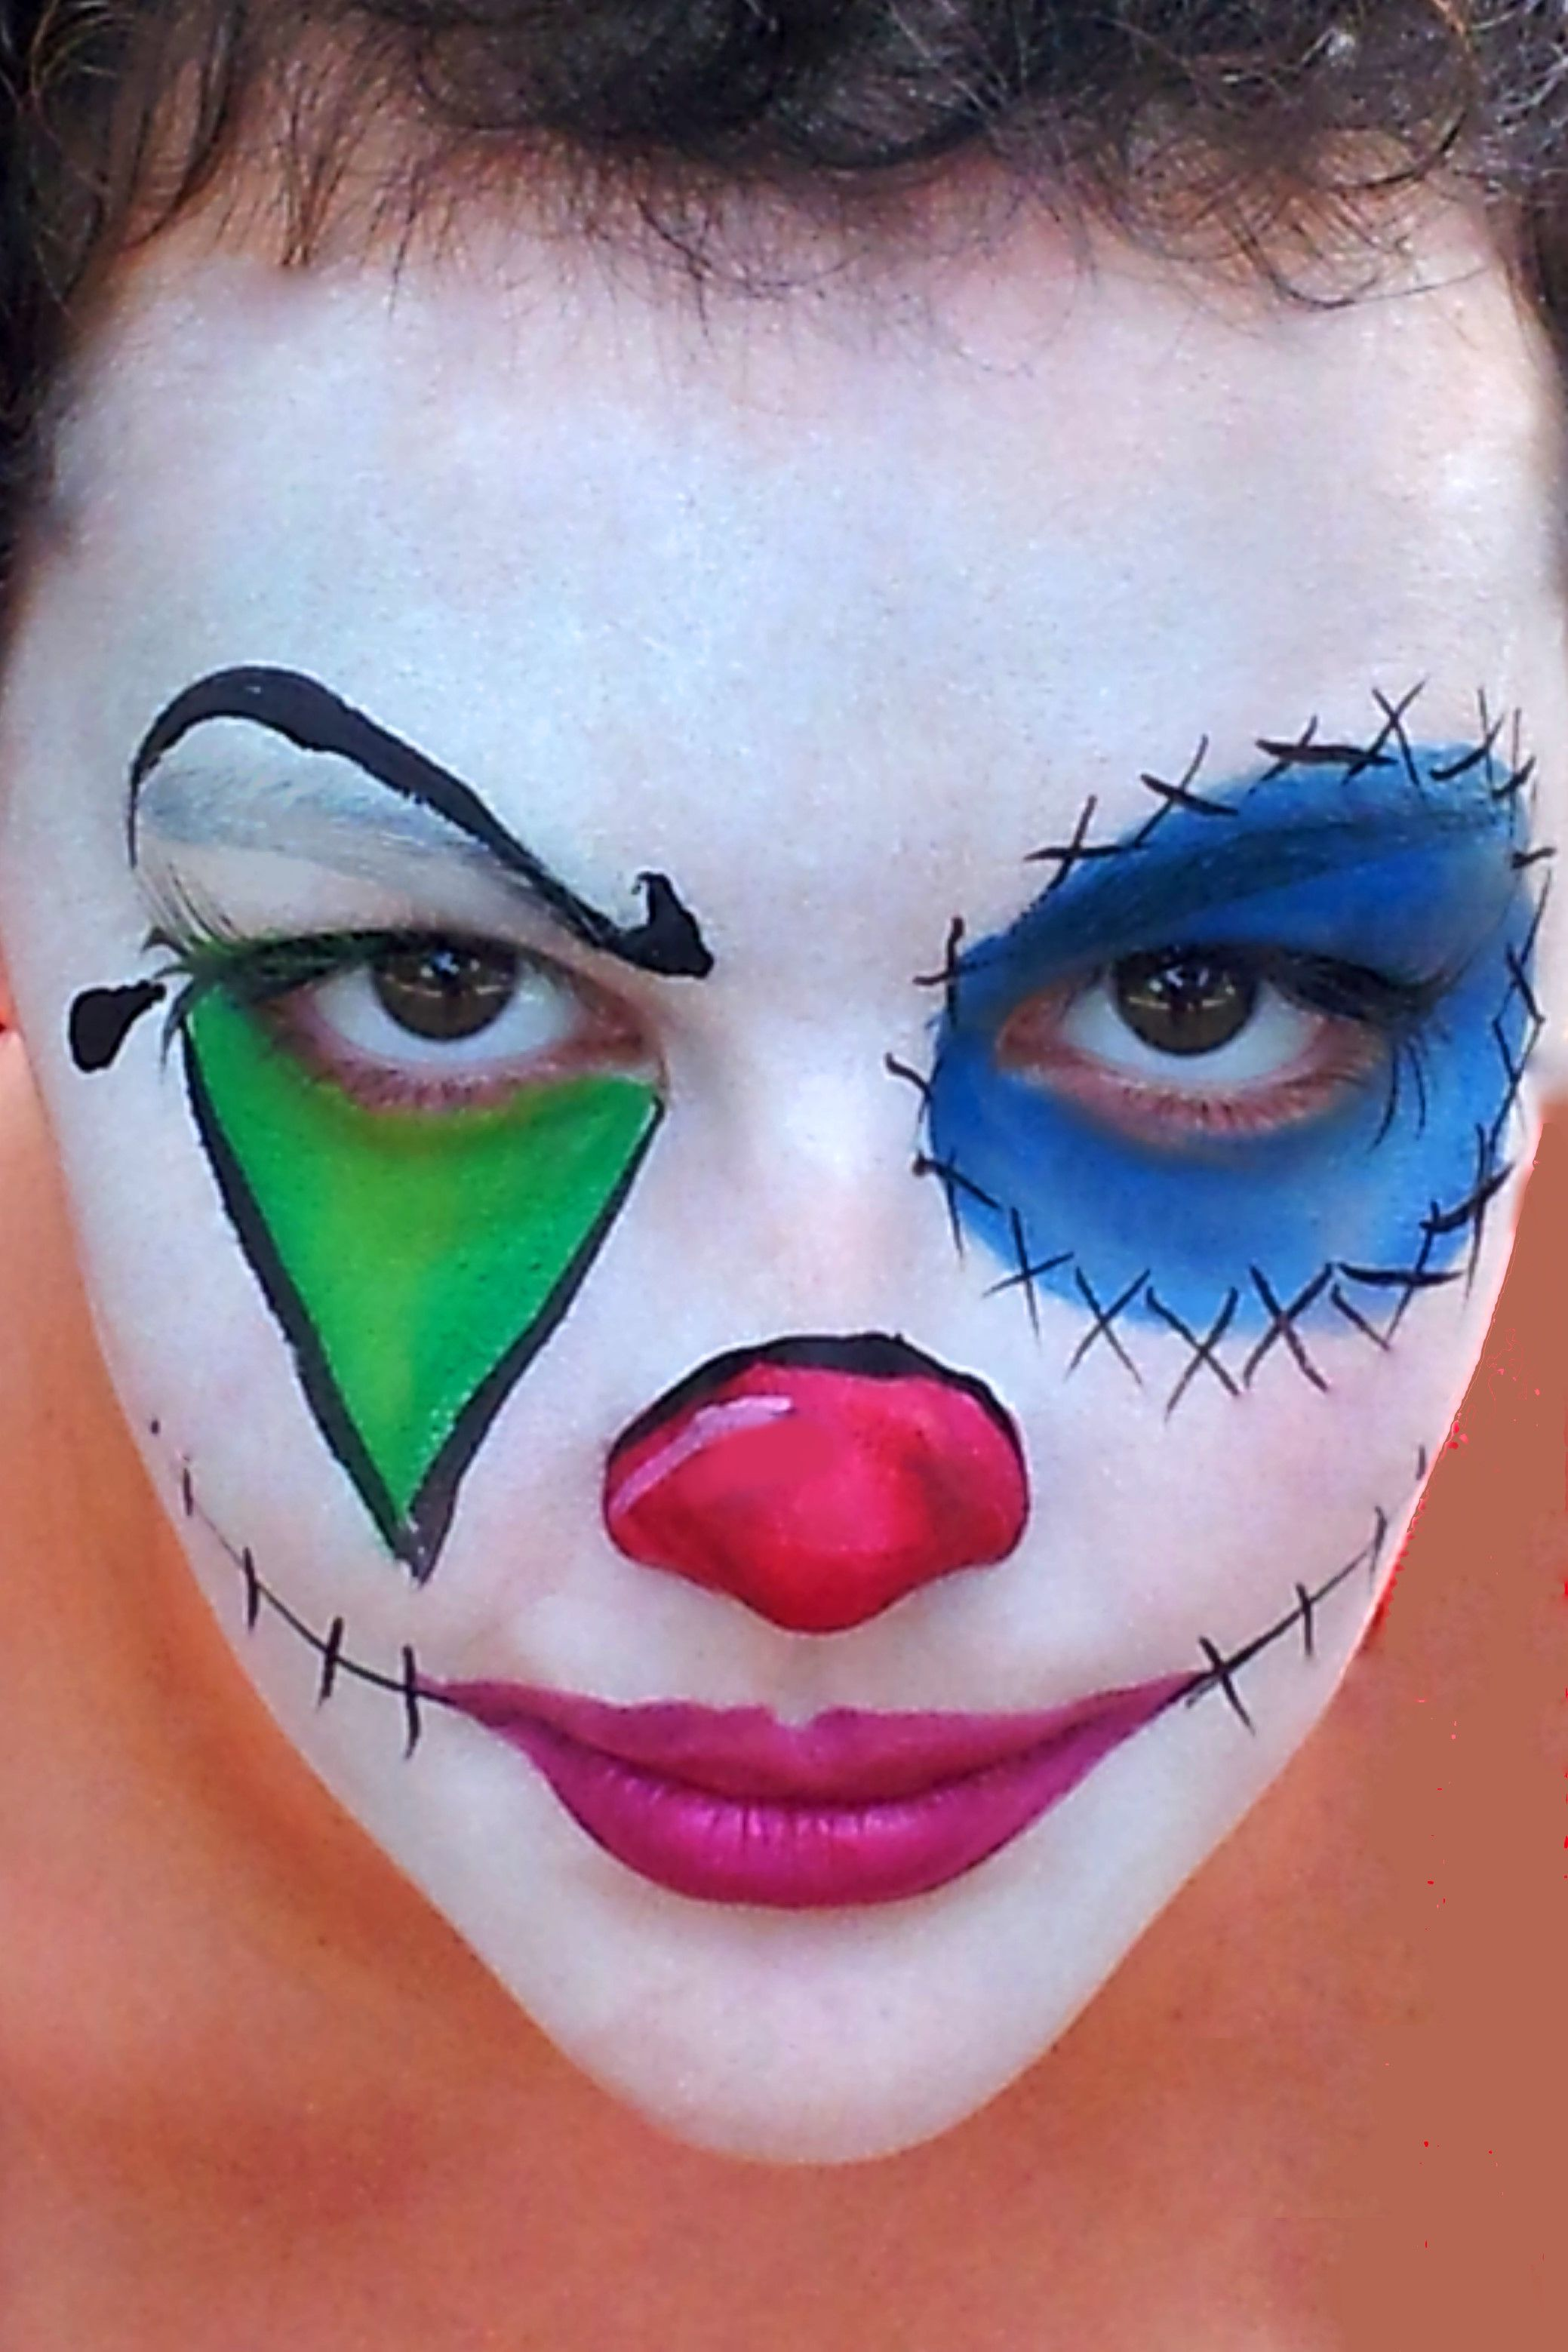 Simple Easy Clown Face Paint : simple, clown, paint, Scary,, Creepy, Clown, Paint, Halloween, Party, Event., White, Background, Starblend, Scary, Face,, Painting, Halloween,, Makeup